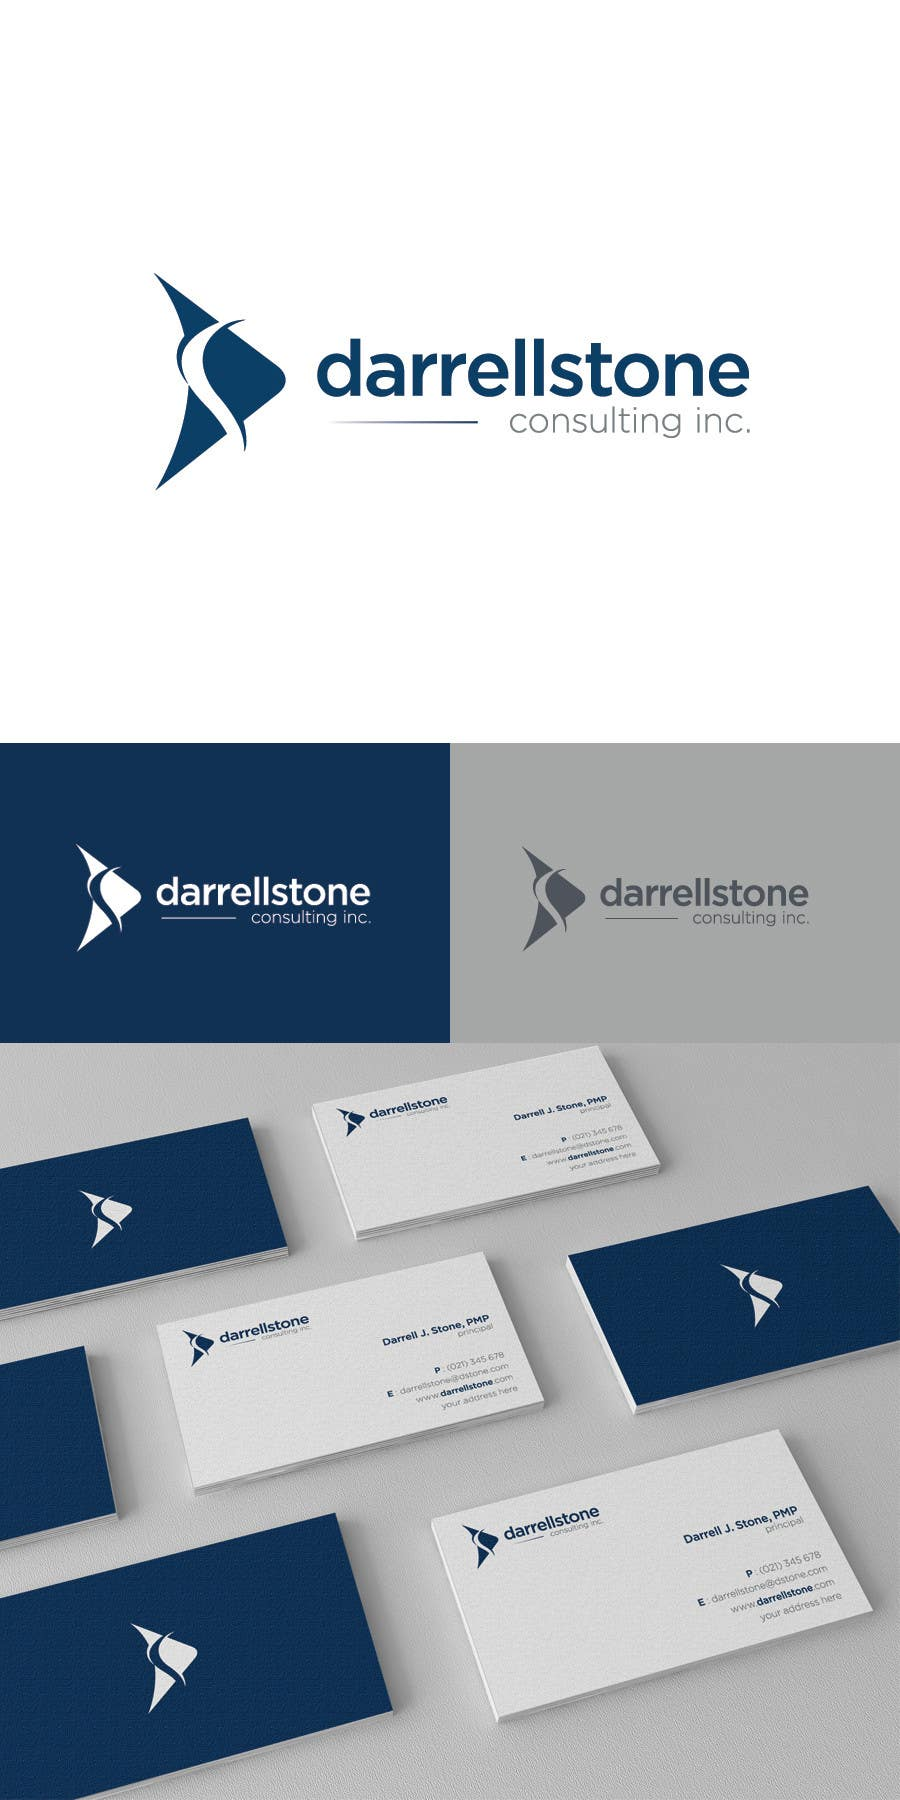 #132 for Logo and business card design by BrandCreativ3